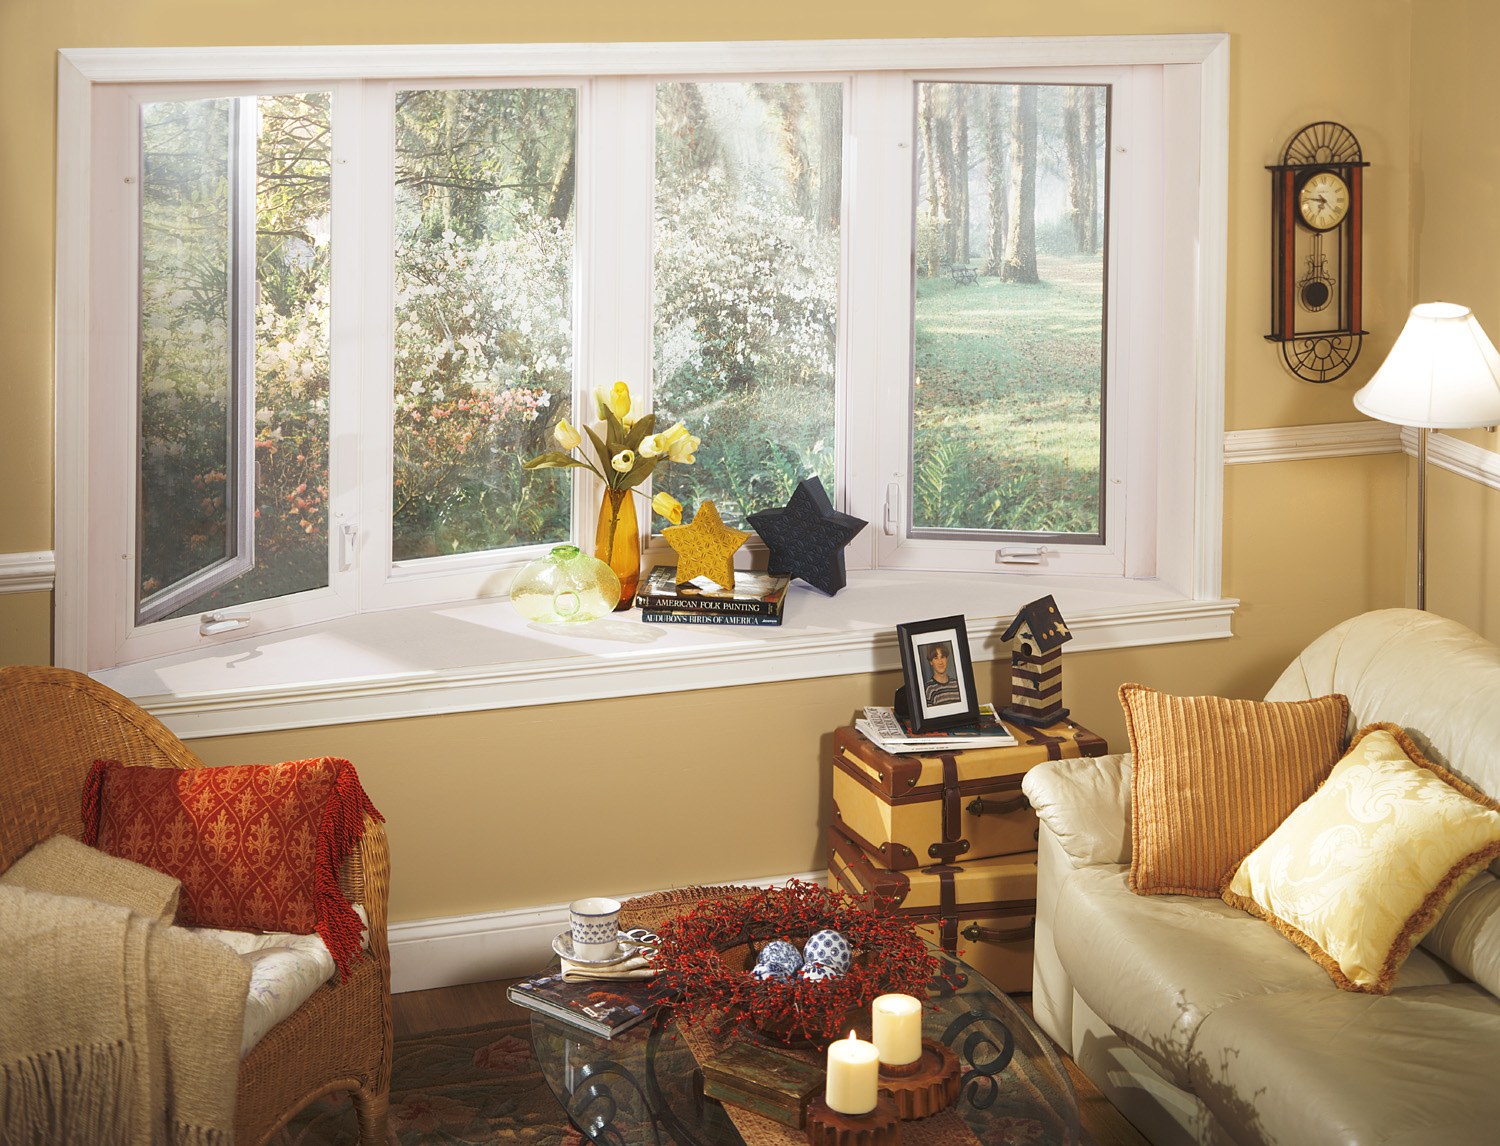 Decorating ideas to window treatments for casement windows - How to decorate room ...